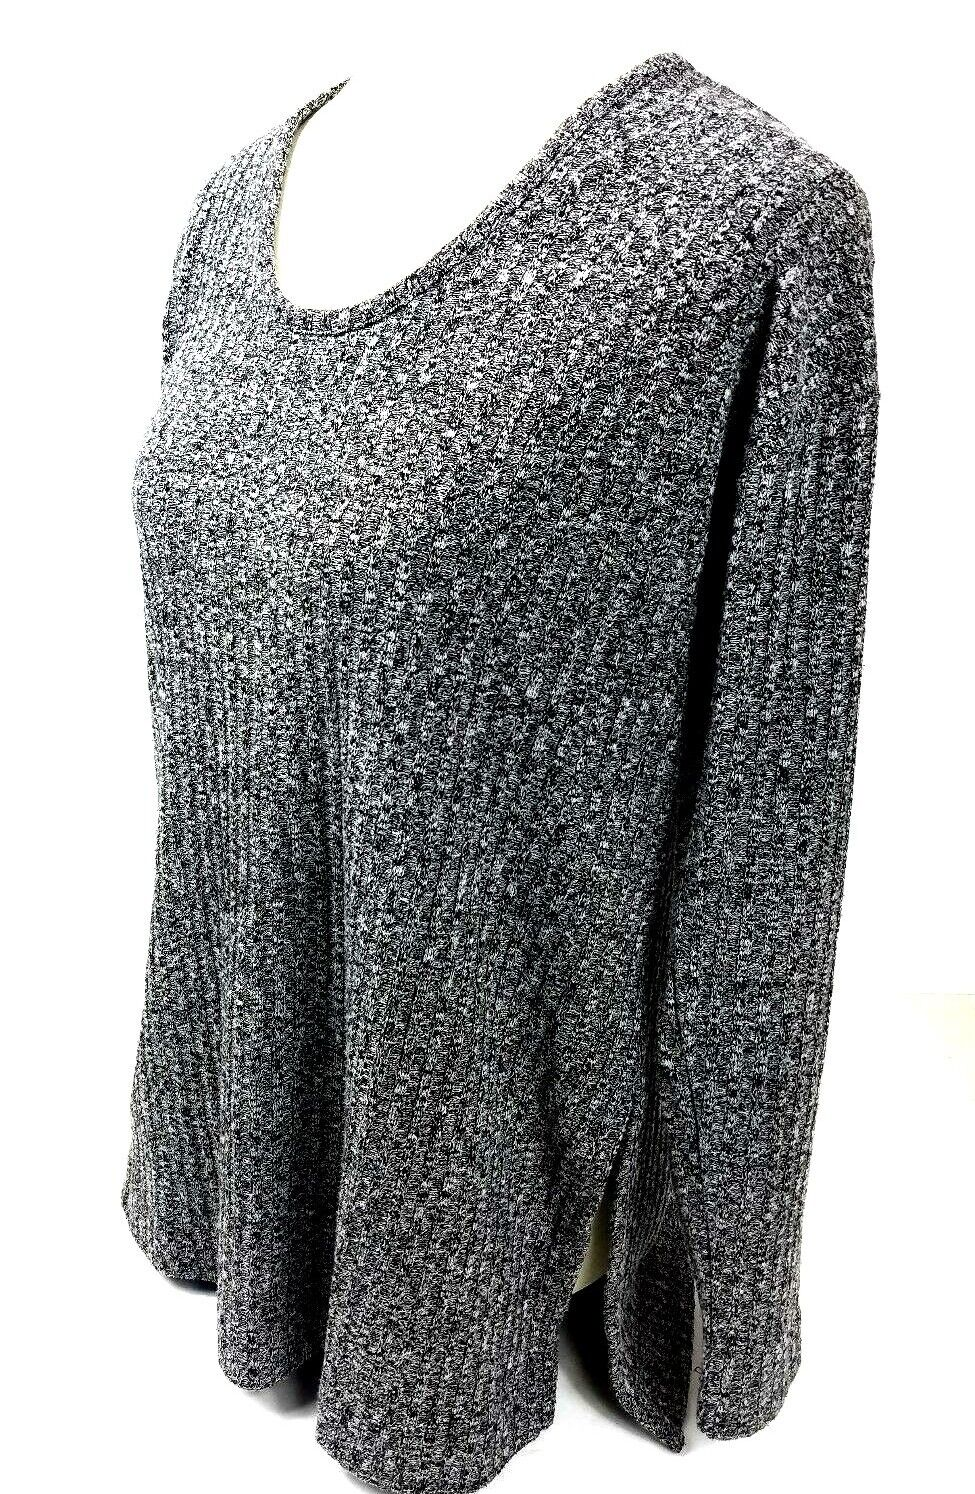 3de5751e1c0 Details about Ann Taylor LOFT Sweater Size Large Women's Pullover Gray Long  Sleeve Textured